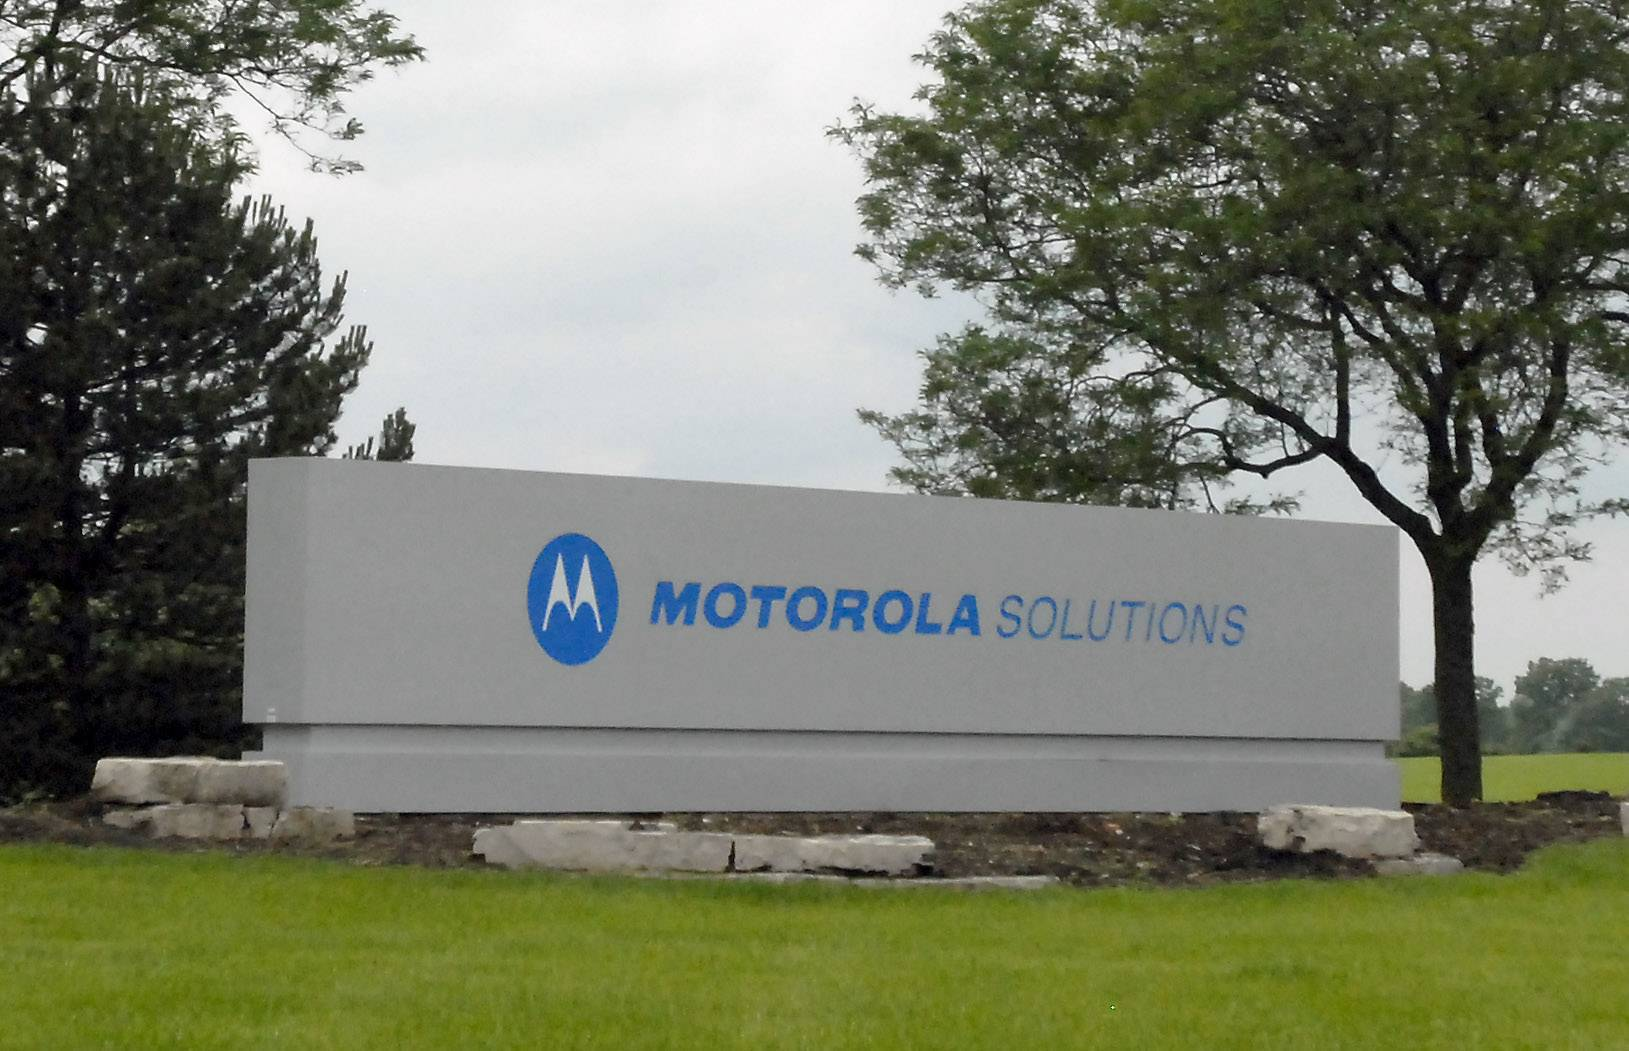 Motorola Solutions, with offices in Schaumburg, was awarded a 5-year contract capped at $495 million by the U.S. Army to update its global mission-critical communications network.